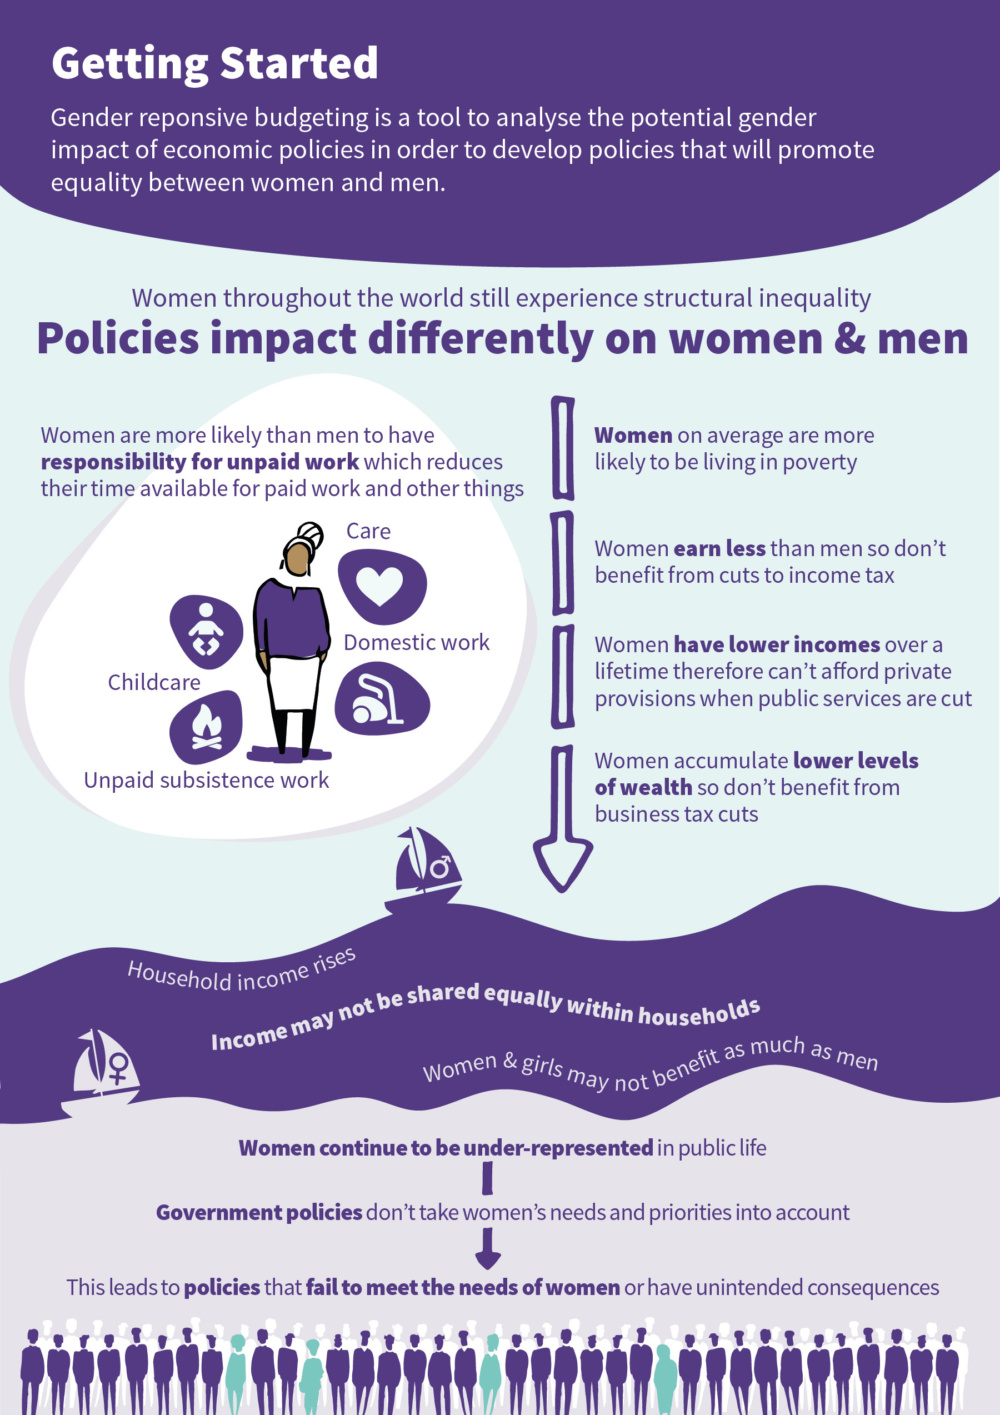 Infographic introducing gender responsive budgeting themes